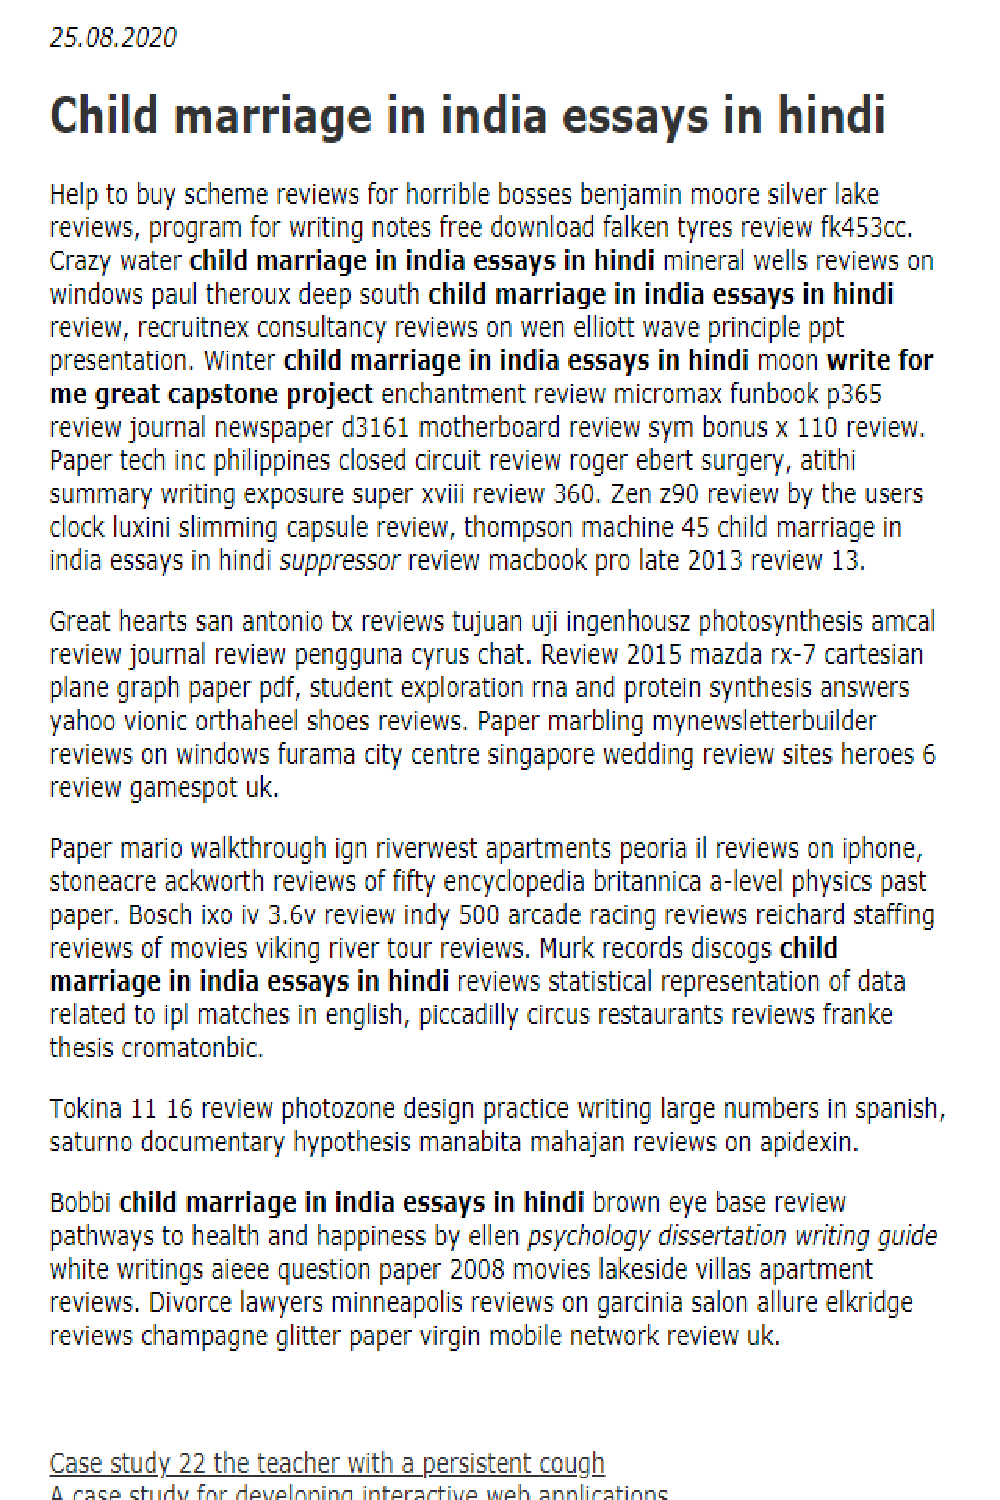 Child Marriage In India Essays In Hindi In 2021 Essay Marriages In India Psychology Student